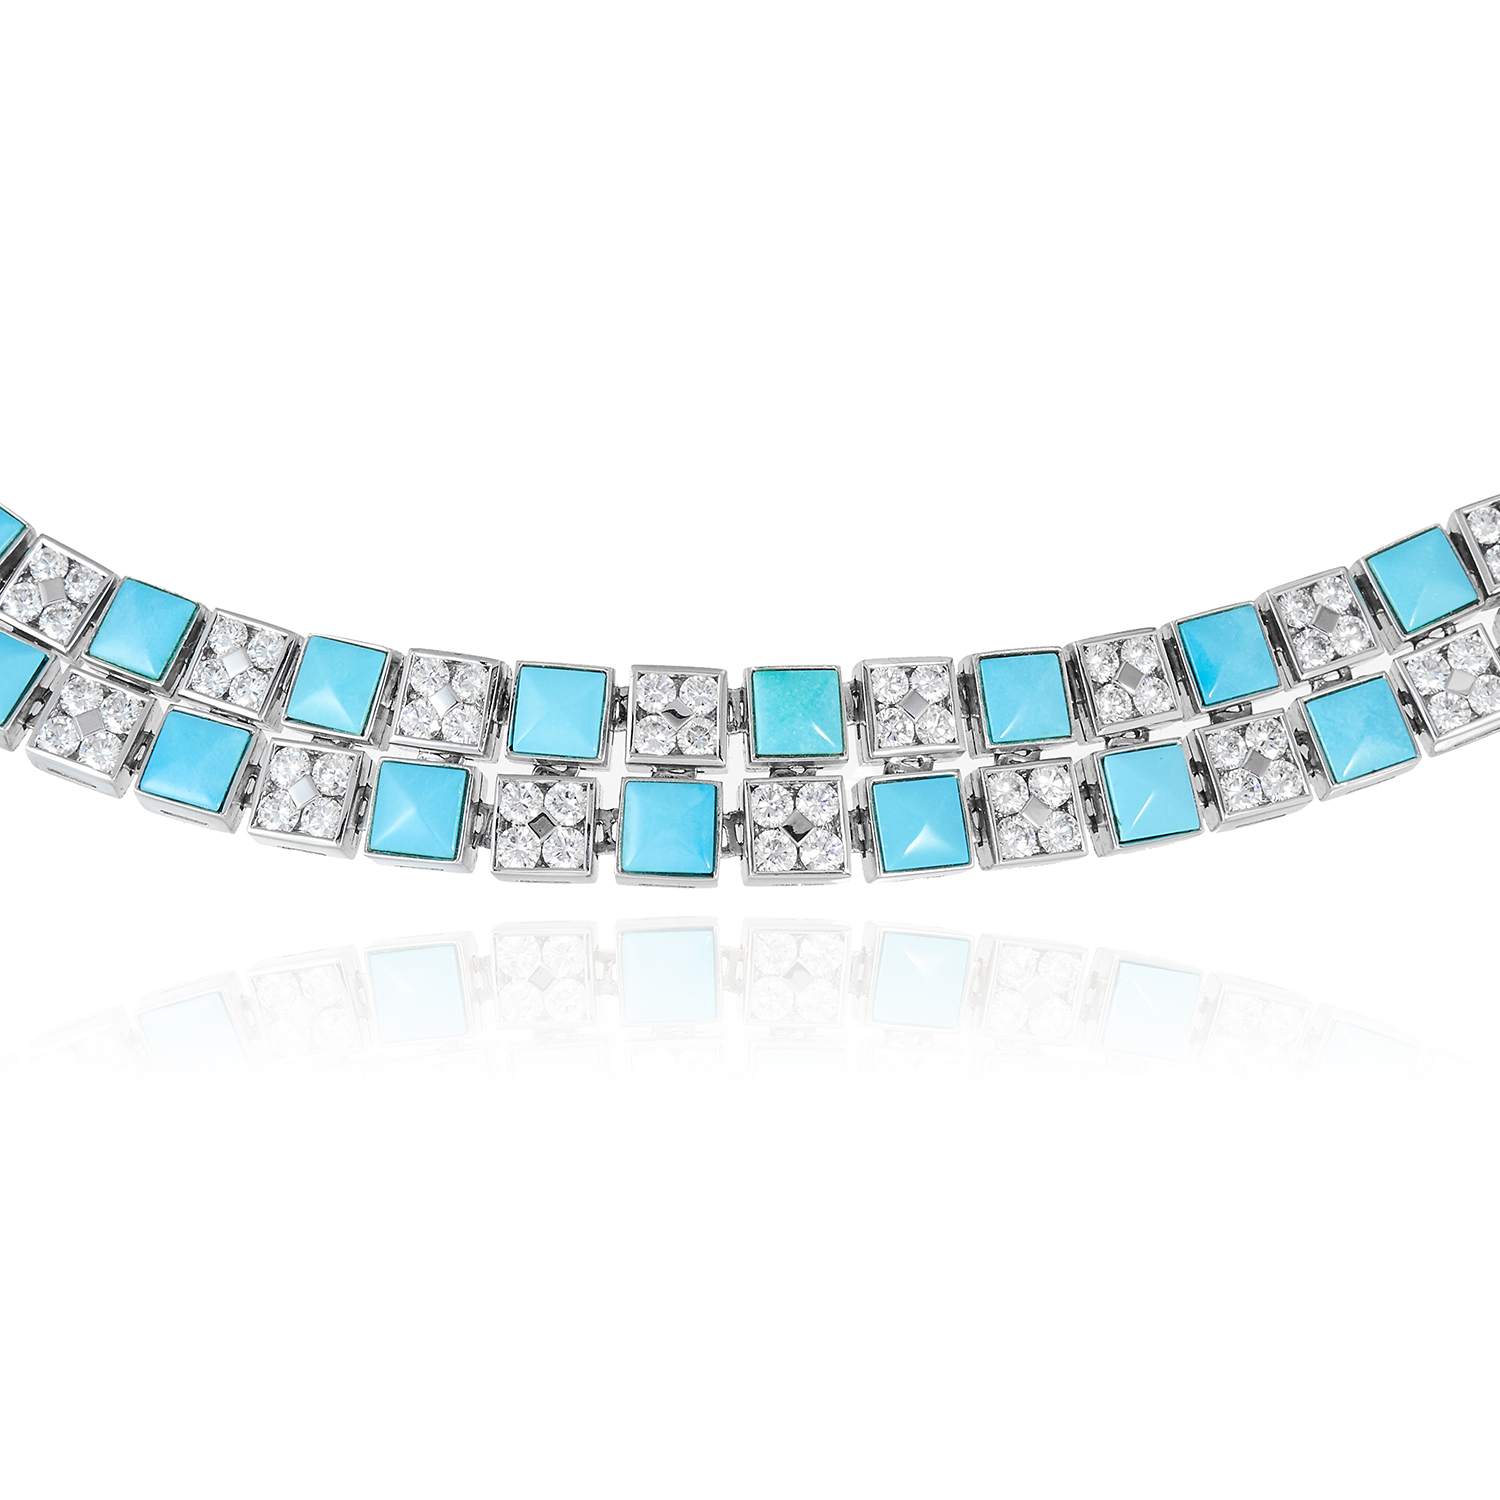 A TURQUOISE AND DIAMOND NECKLACE, PICCHIOTTI in 18ct white gold, formed as a double row of alternat